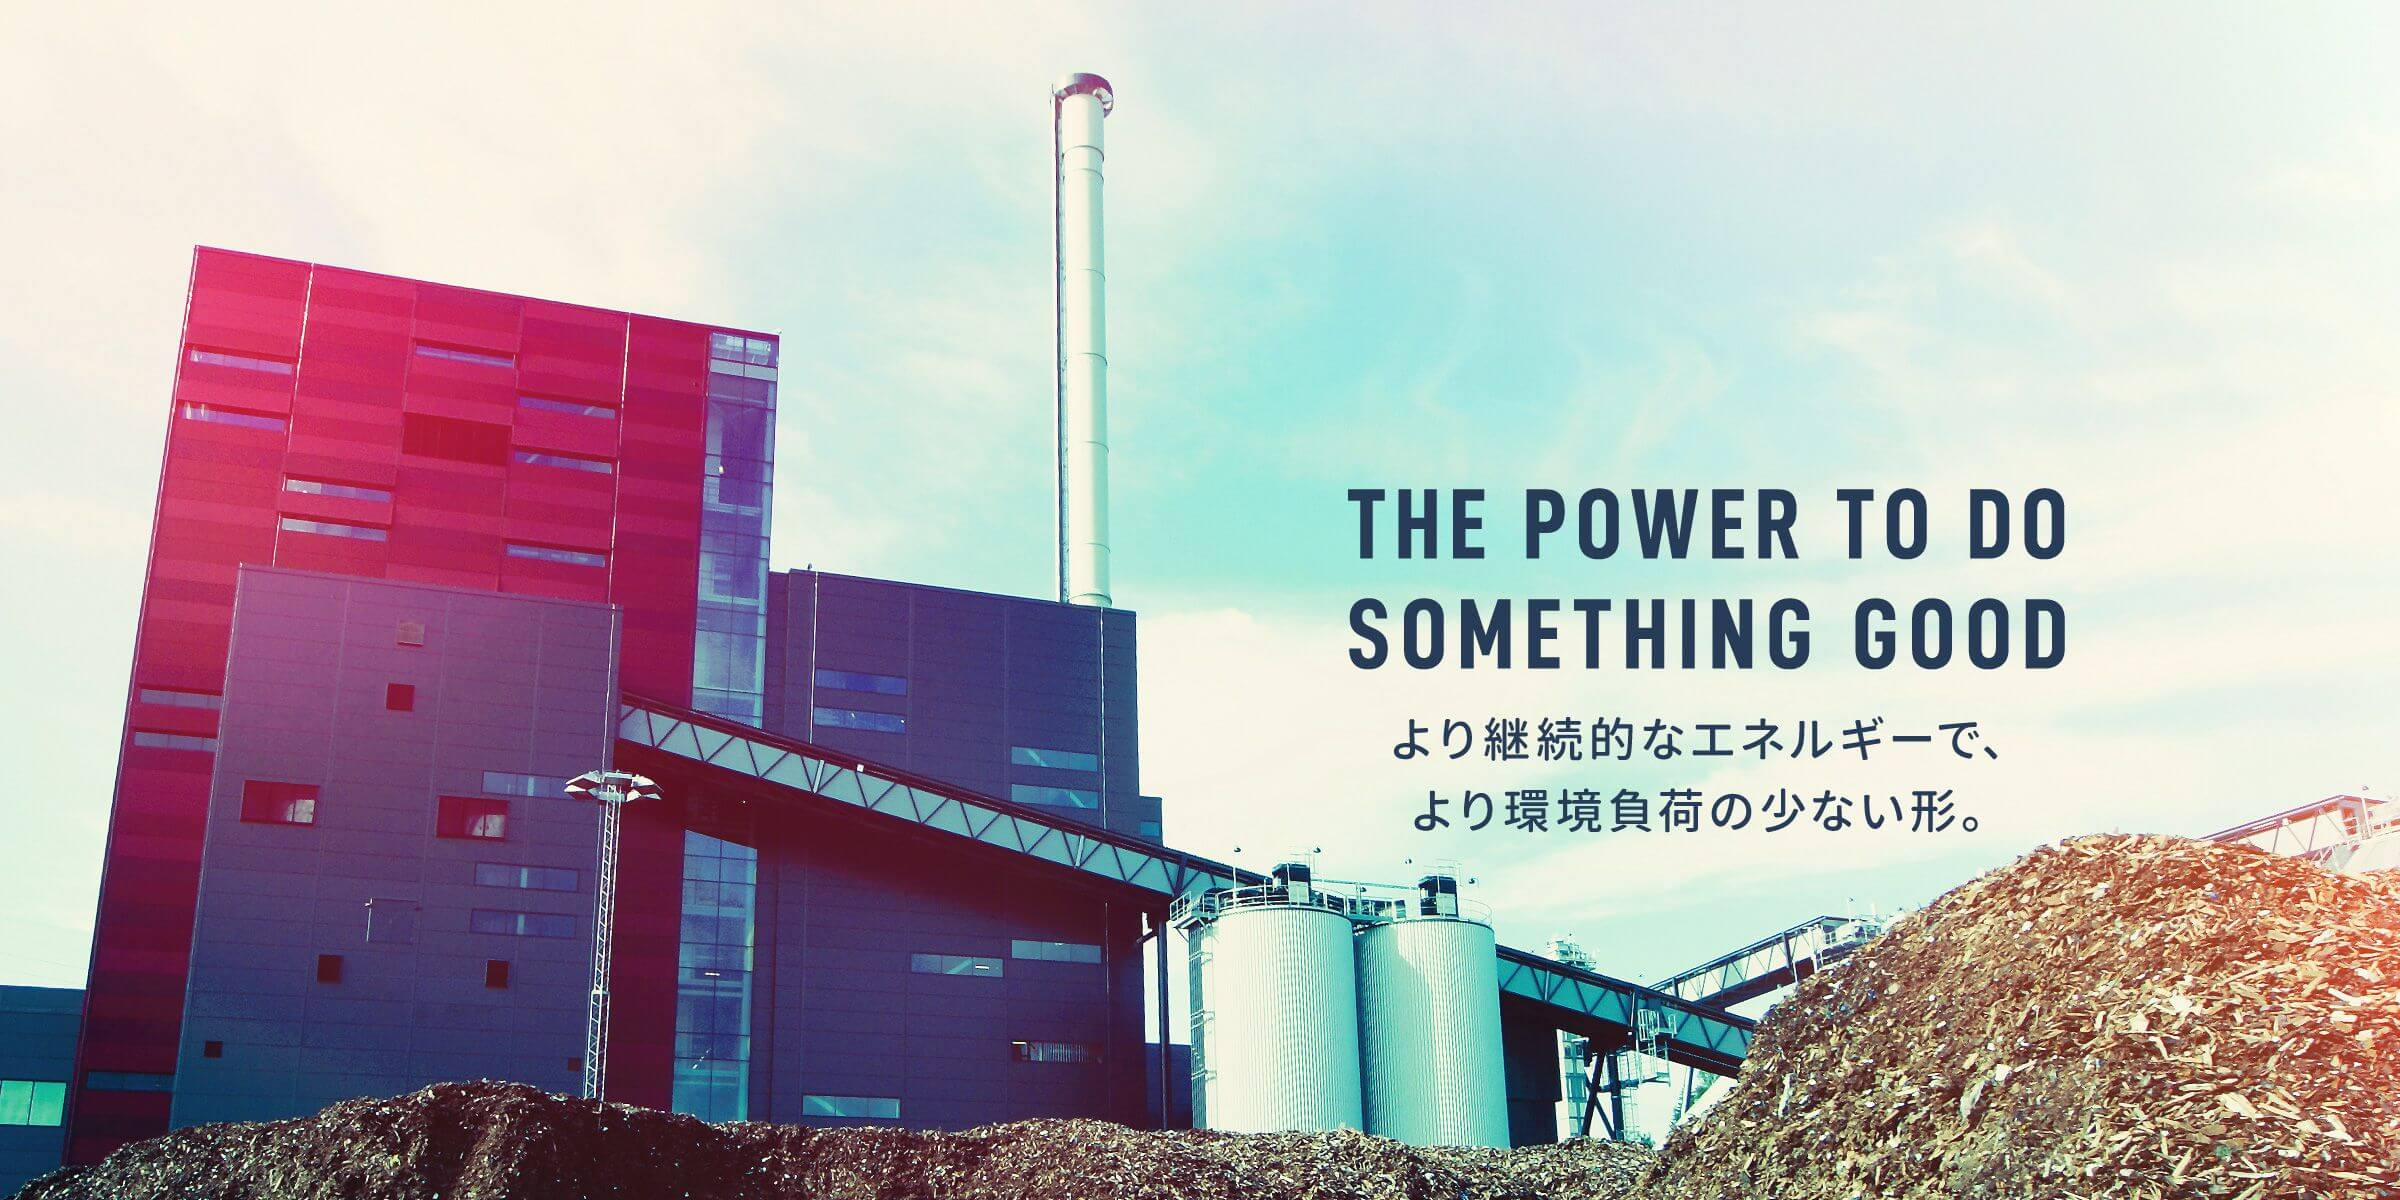 THE POWER TODO SOMETHING GOOD より継続的なエネルギーで、より環境負荷の少ない形